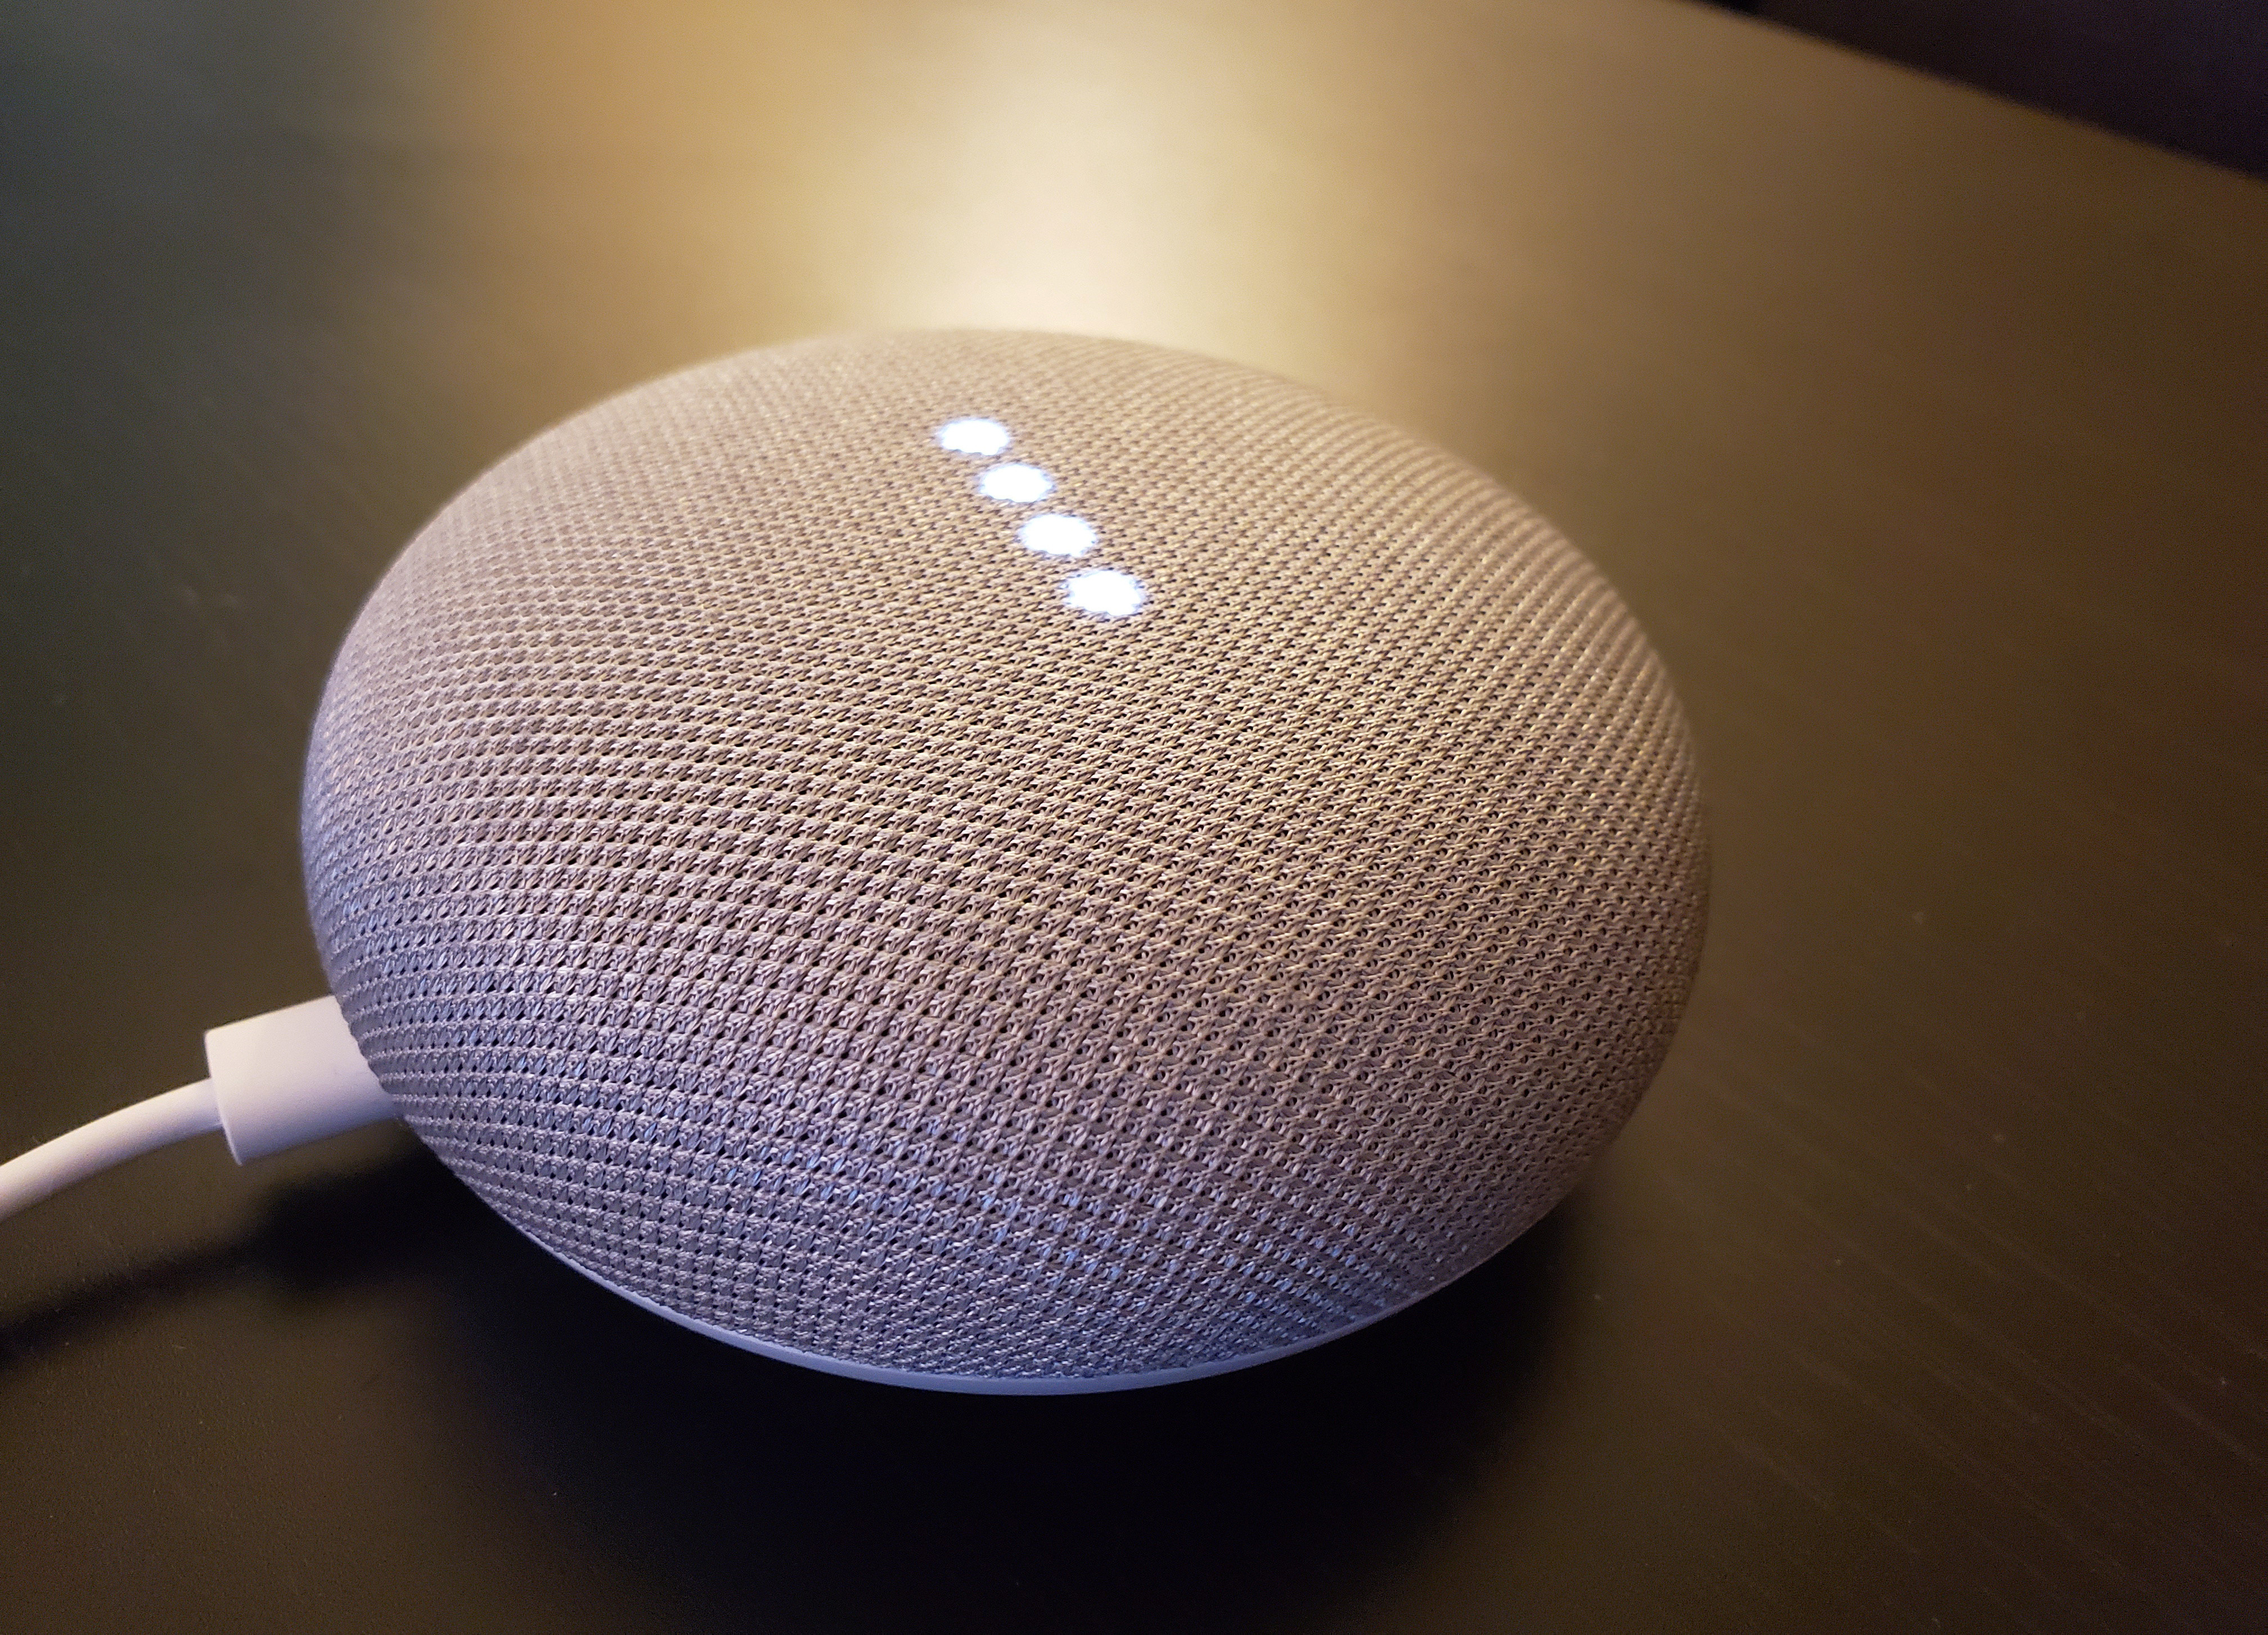 Smart devices can create security risks in your home   World